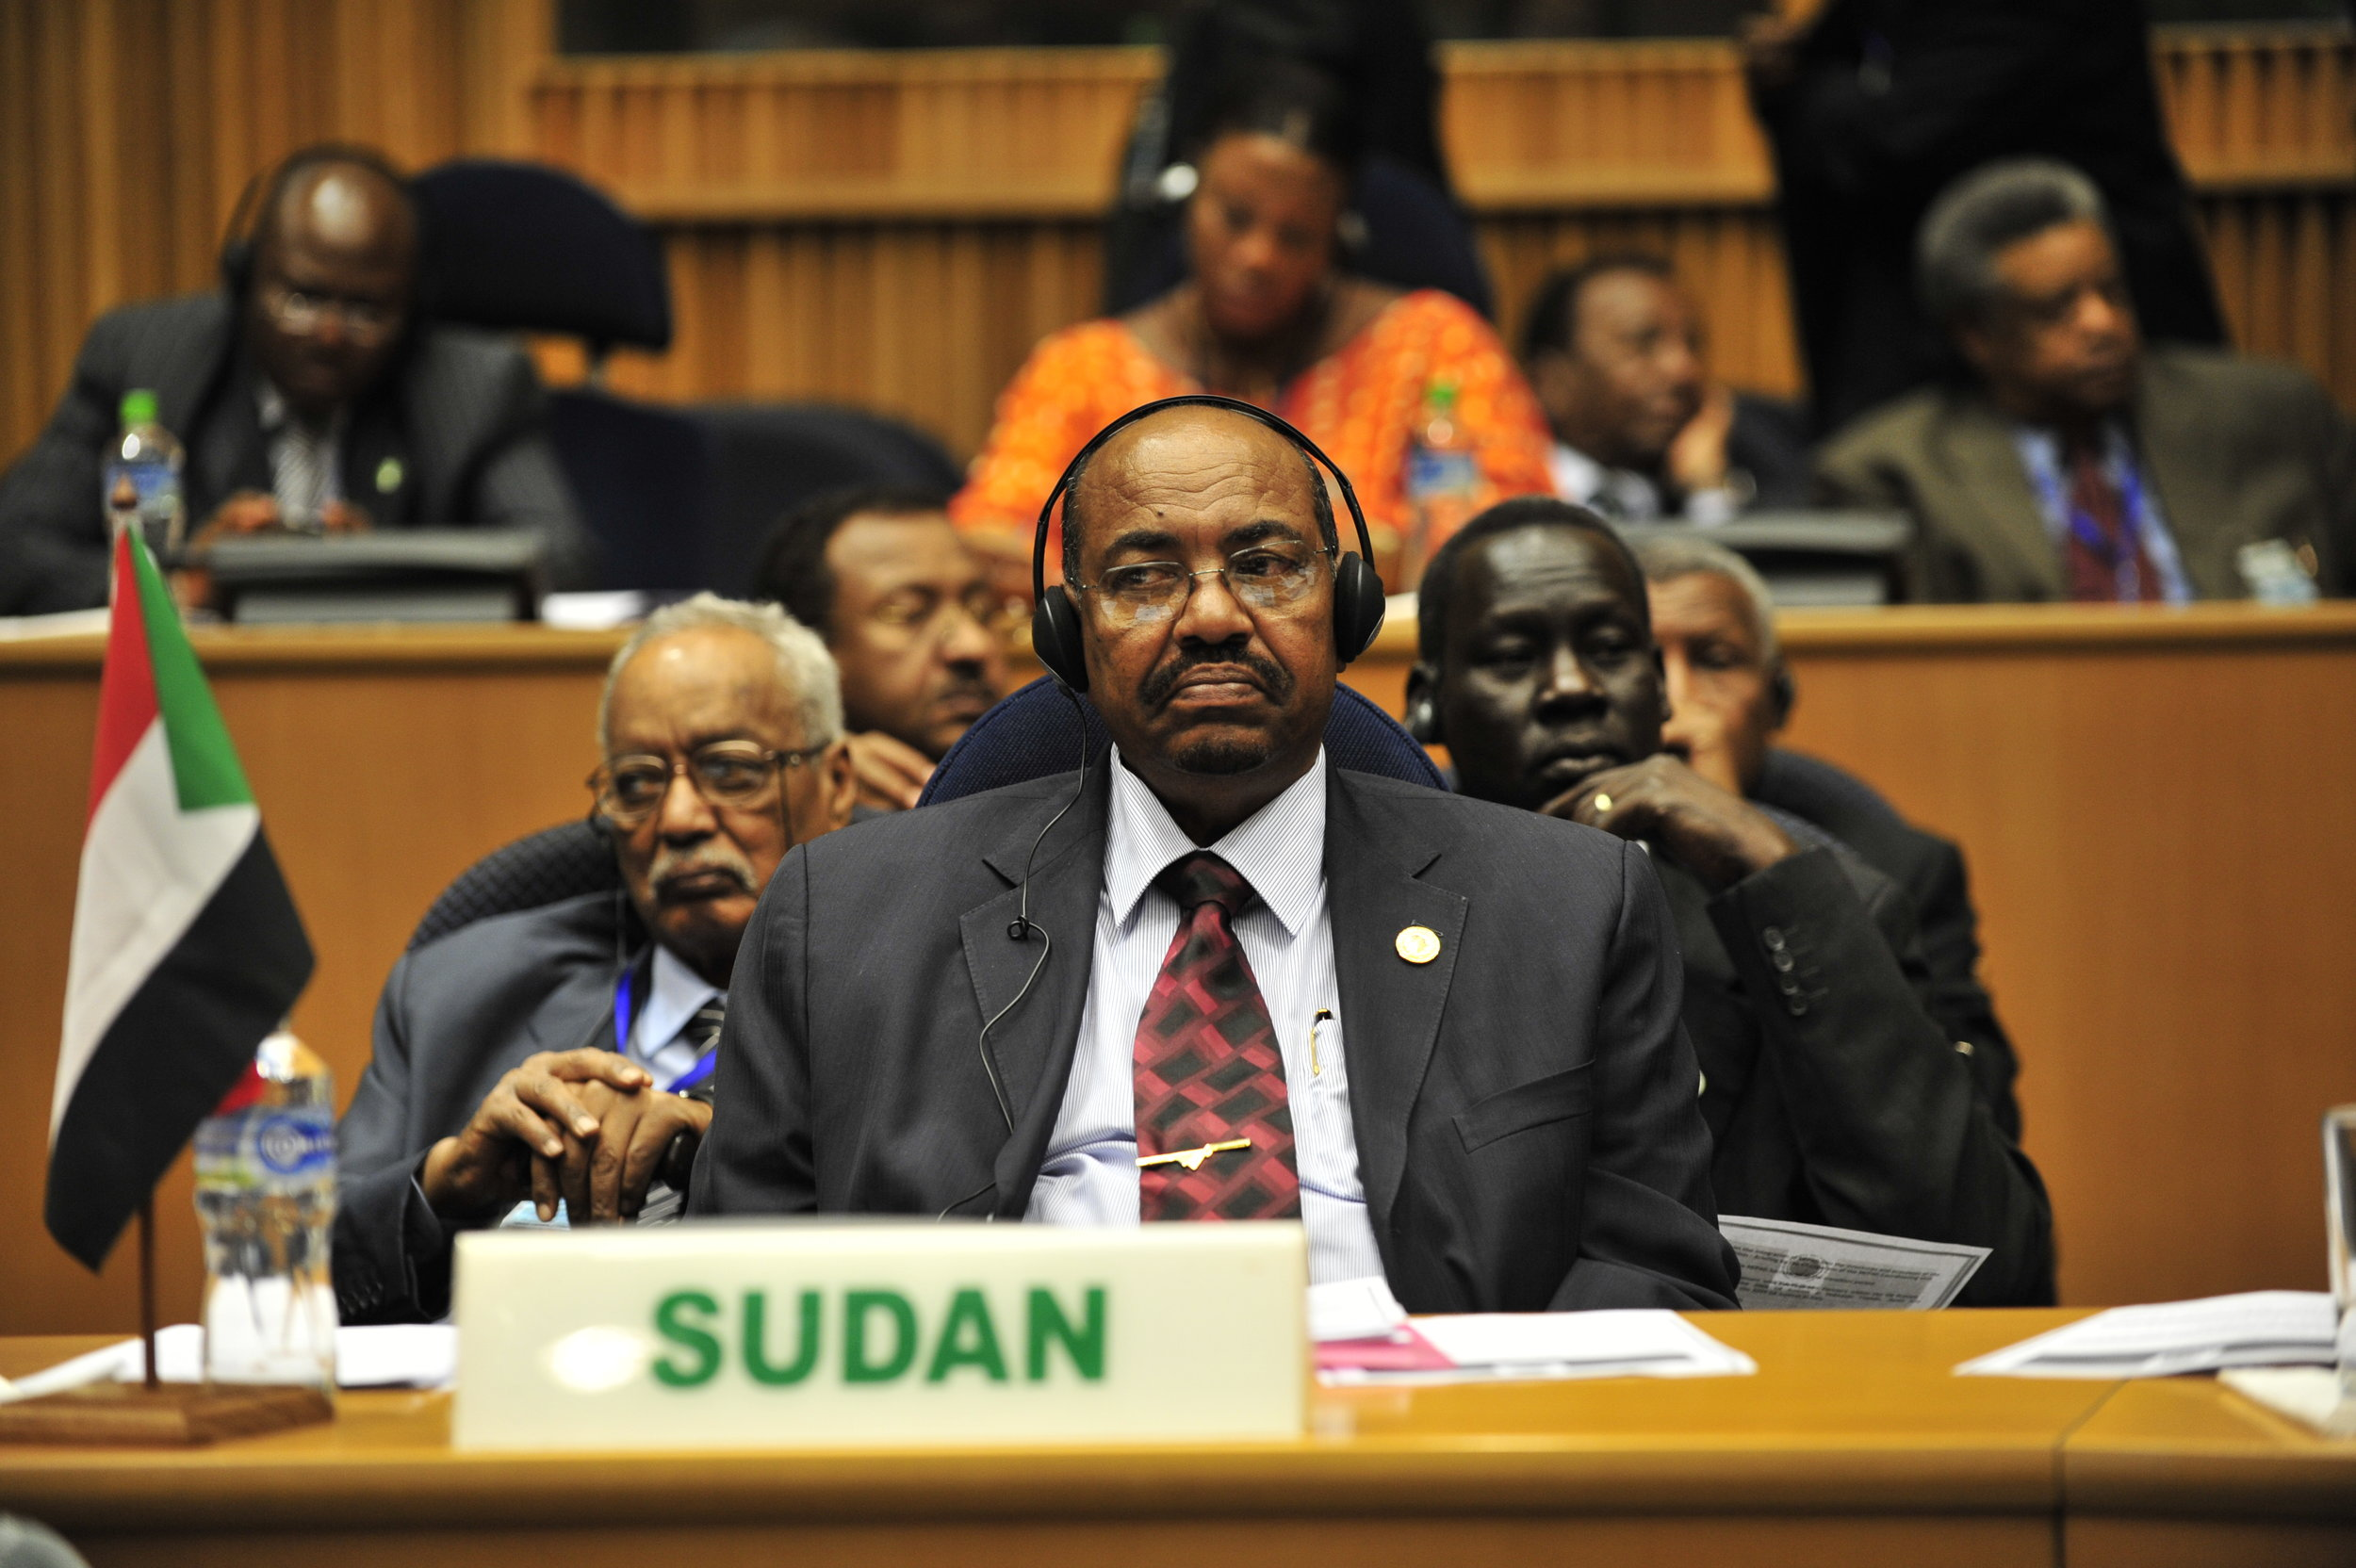 Omar_al-Bashir,_12th_AU_Summit,_090131-N-0506A-347.jpg